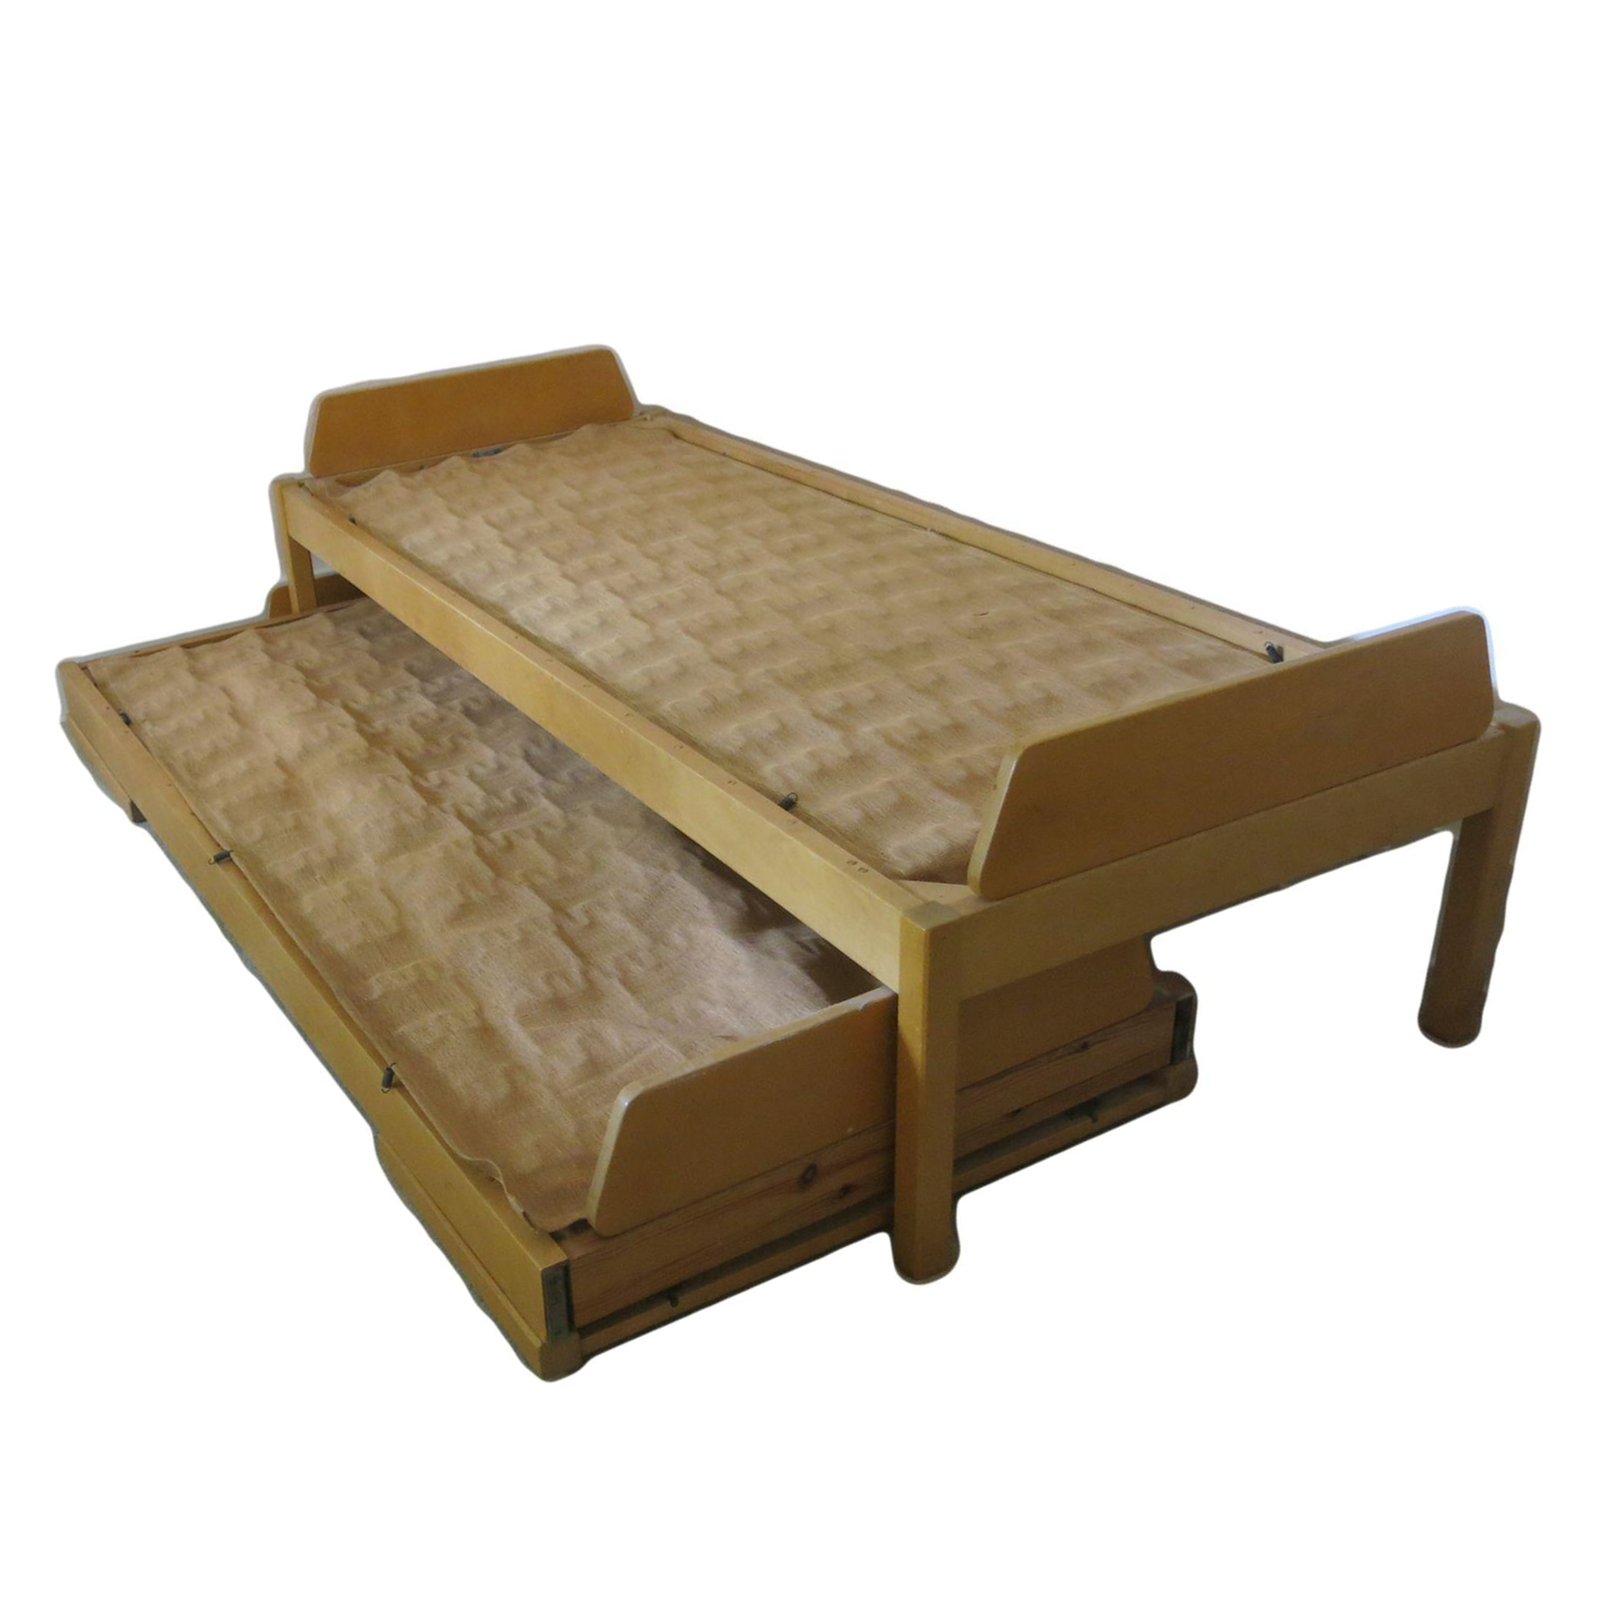 blond birch twin bed with folding trundle designed in the 1950s for